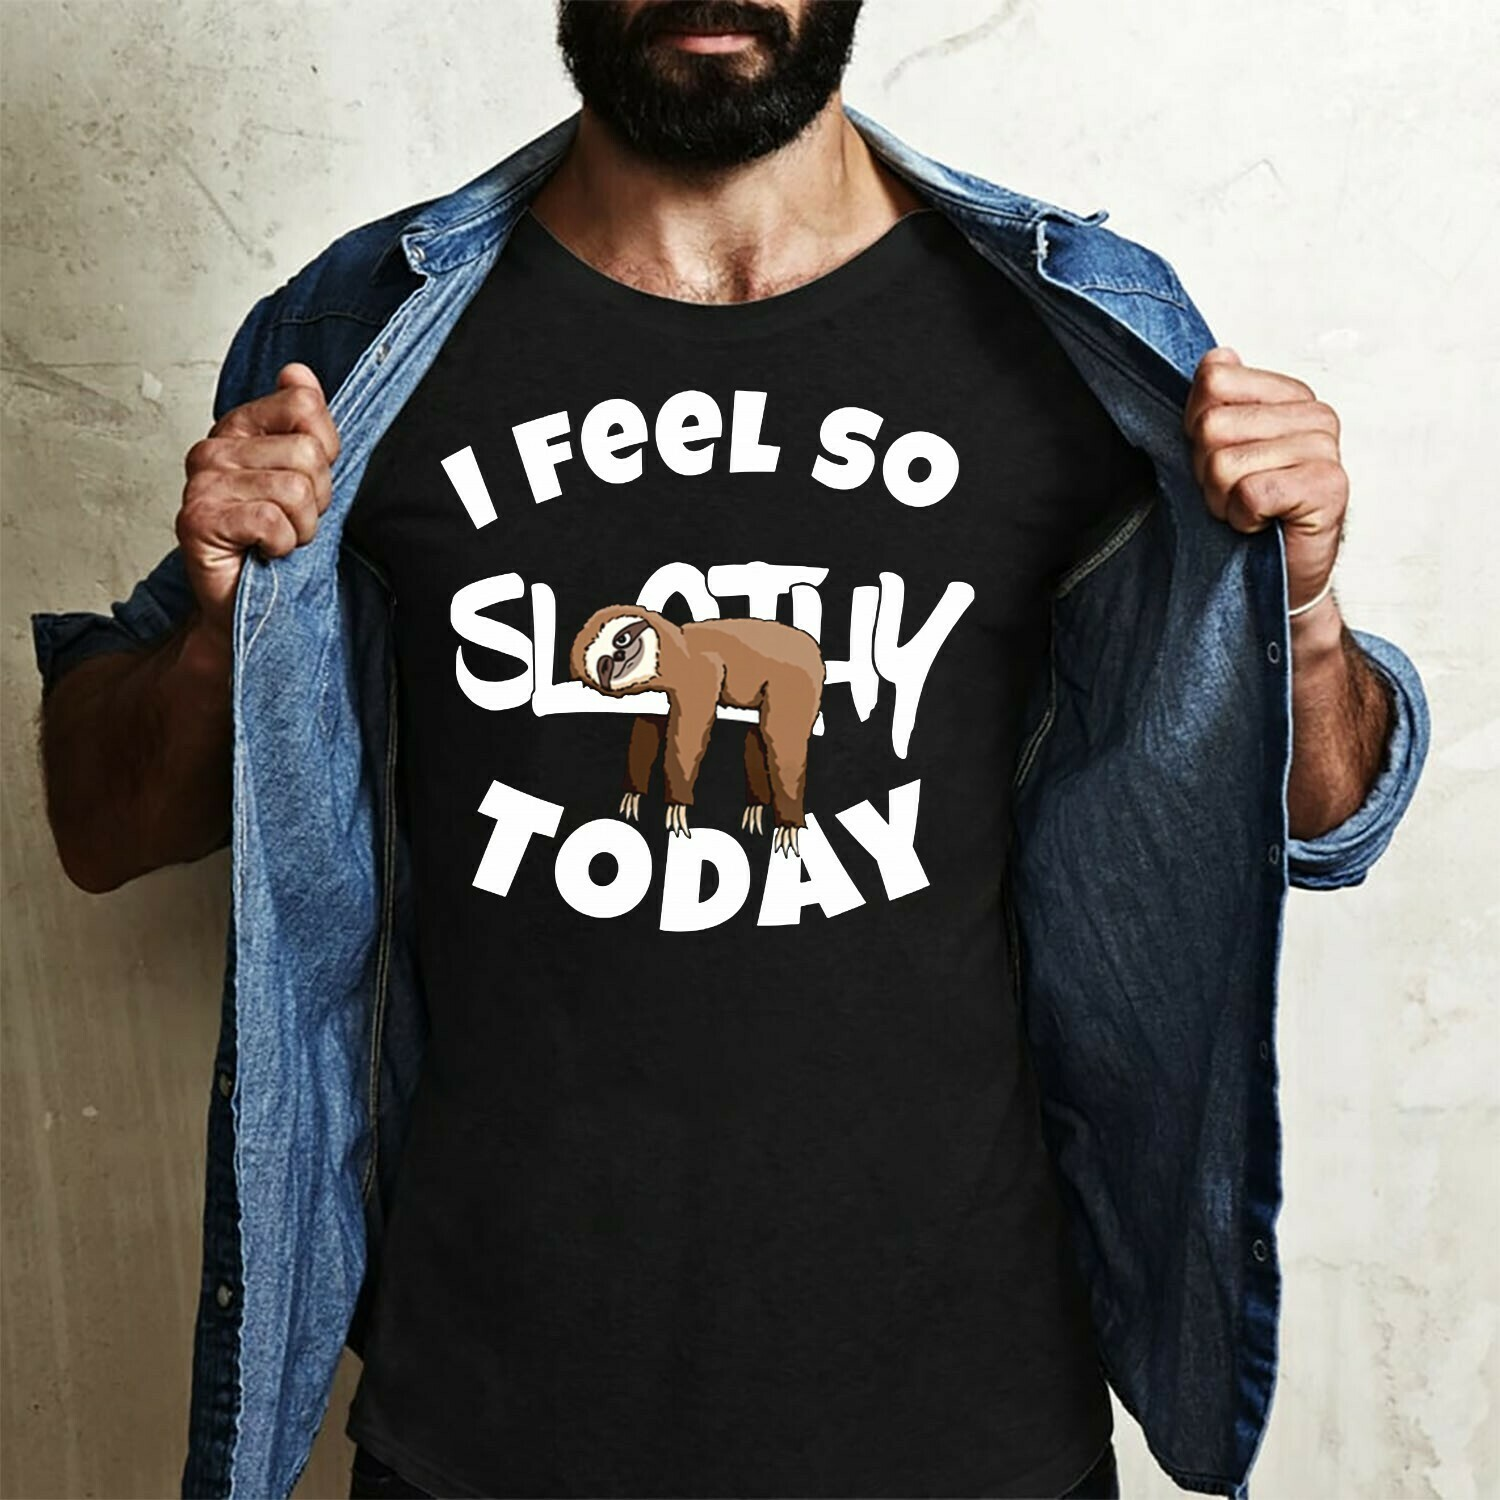 I Feel so Slothy Today Funny Cartoon Sloth Baby Spirit Animal Chill and Relax Animal lover gift T-Shirt Long Sleeve Sweatshirt Hoodie Jolly Family Gifts